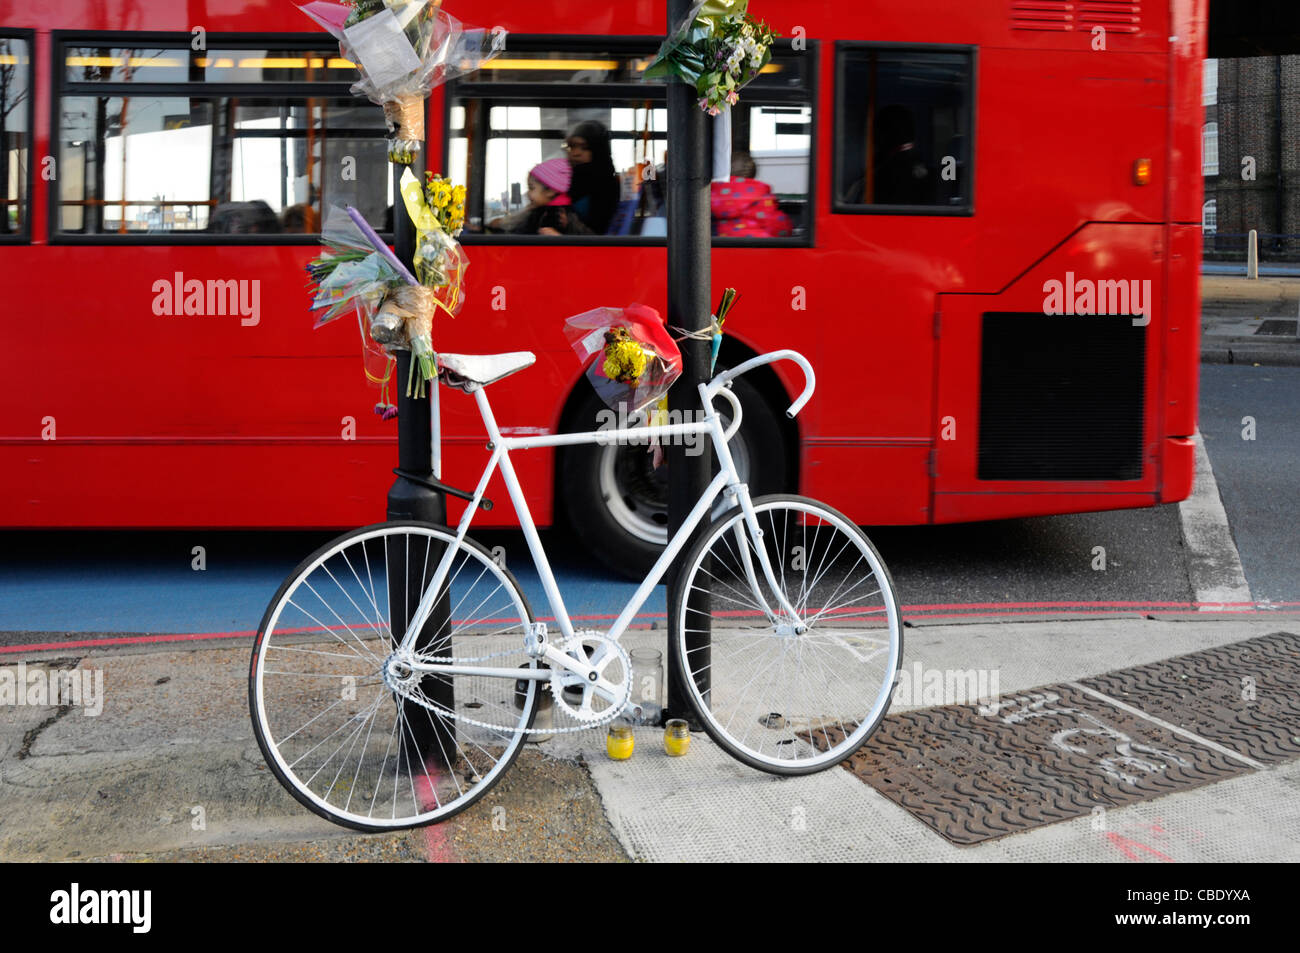 White push bike memorial and flowers for cyclist killed at road junction includes blue cycle lane road markings - Stock Image